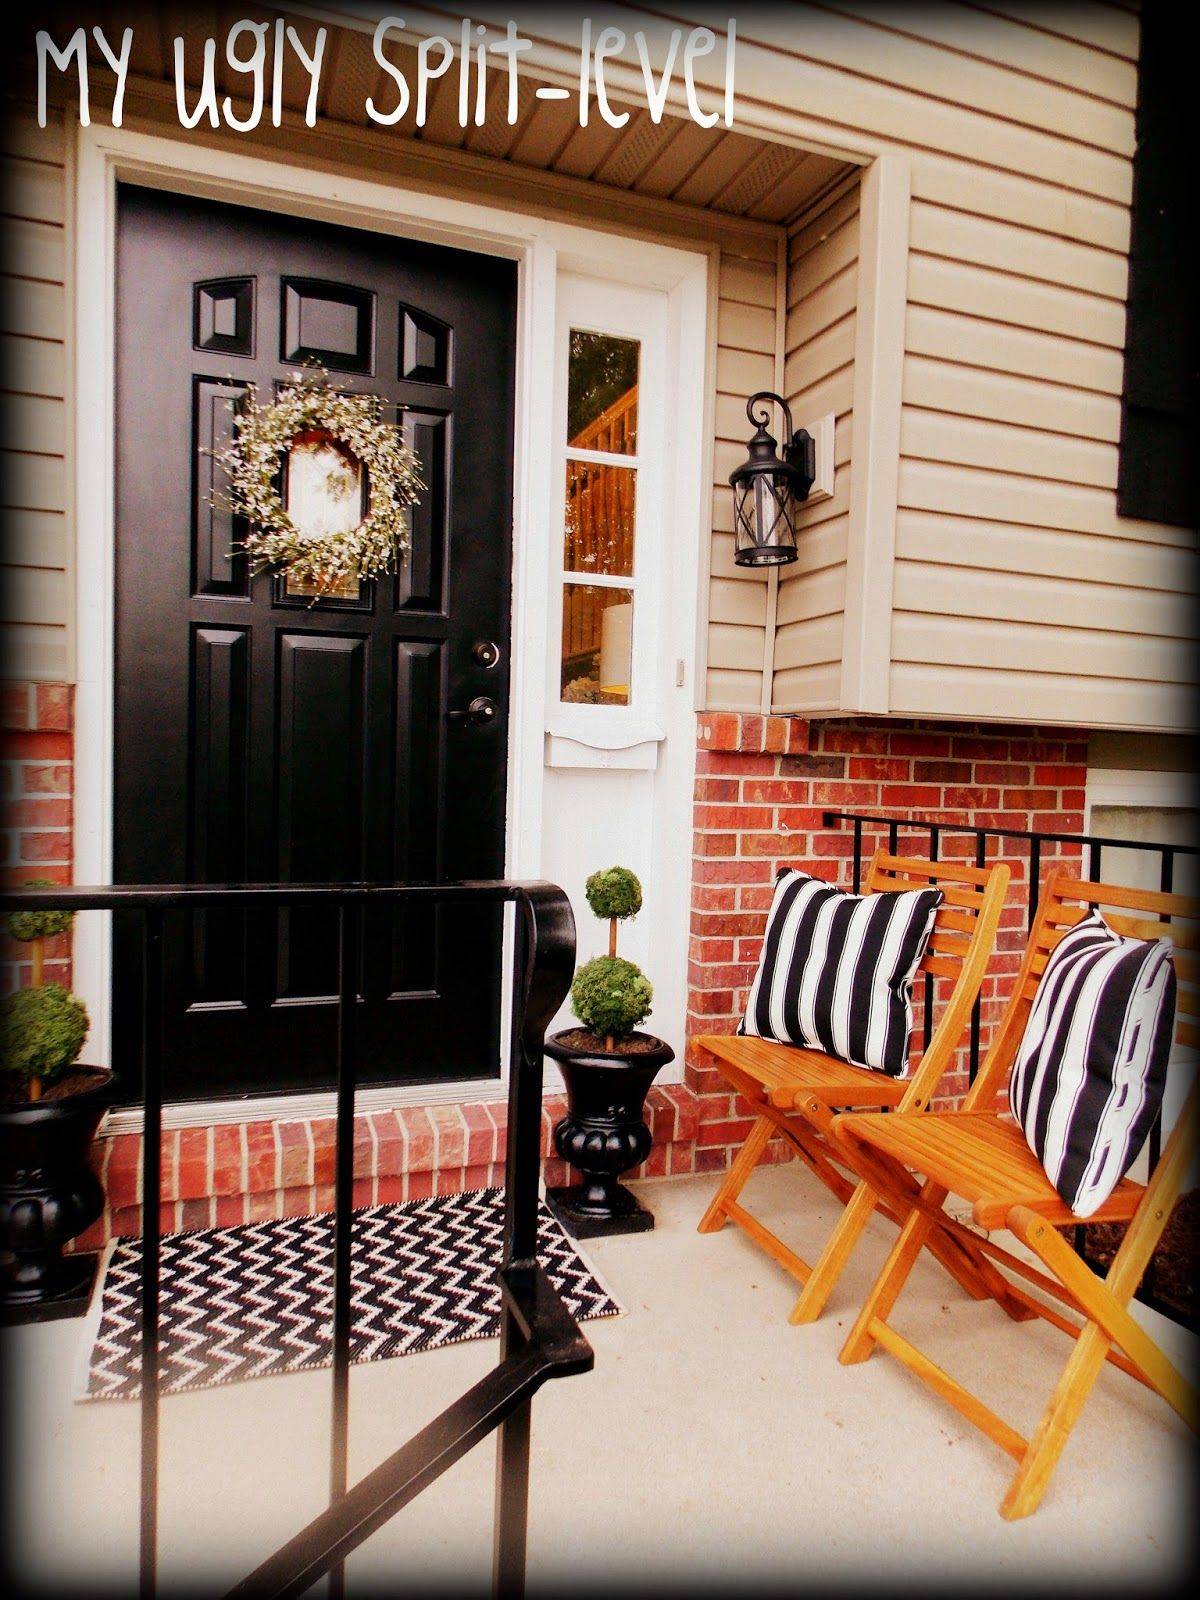 Split Level Porch Love My Ugly Split Level Bi Level